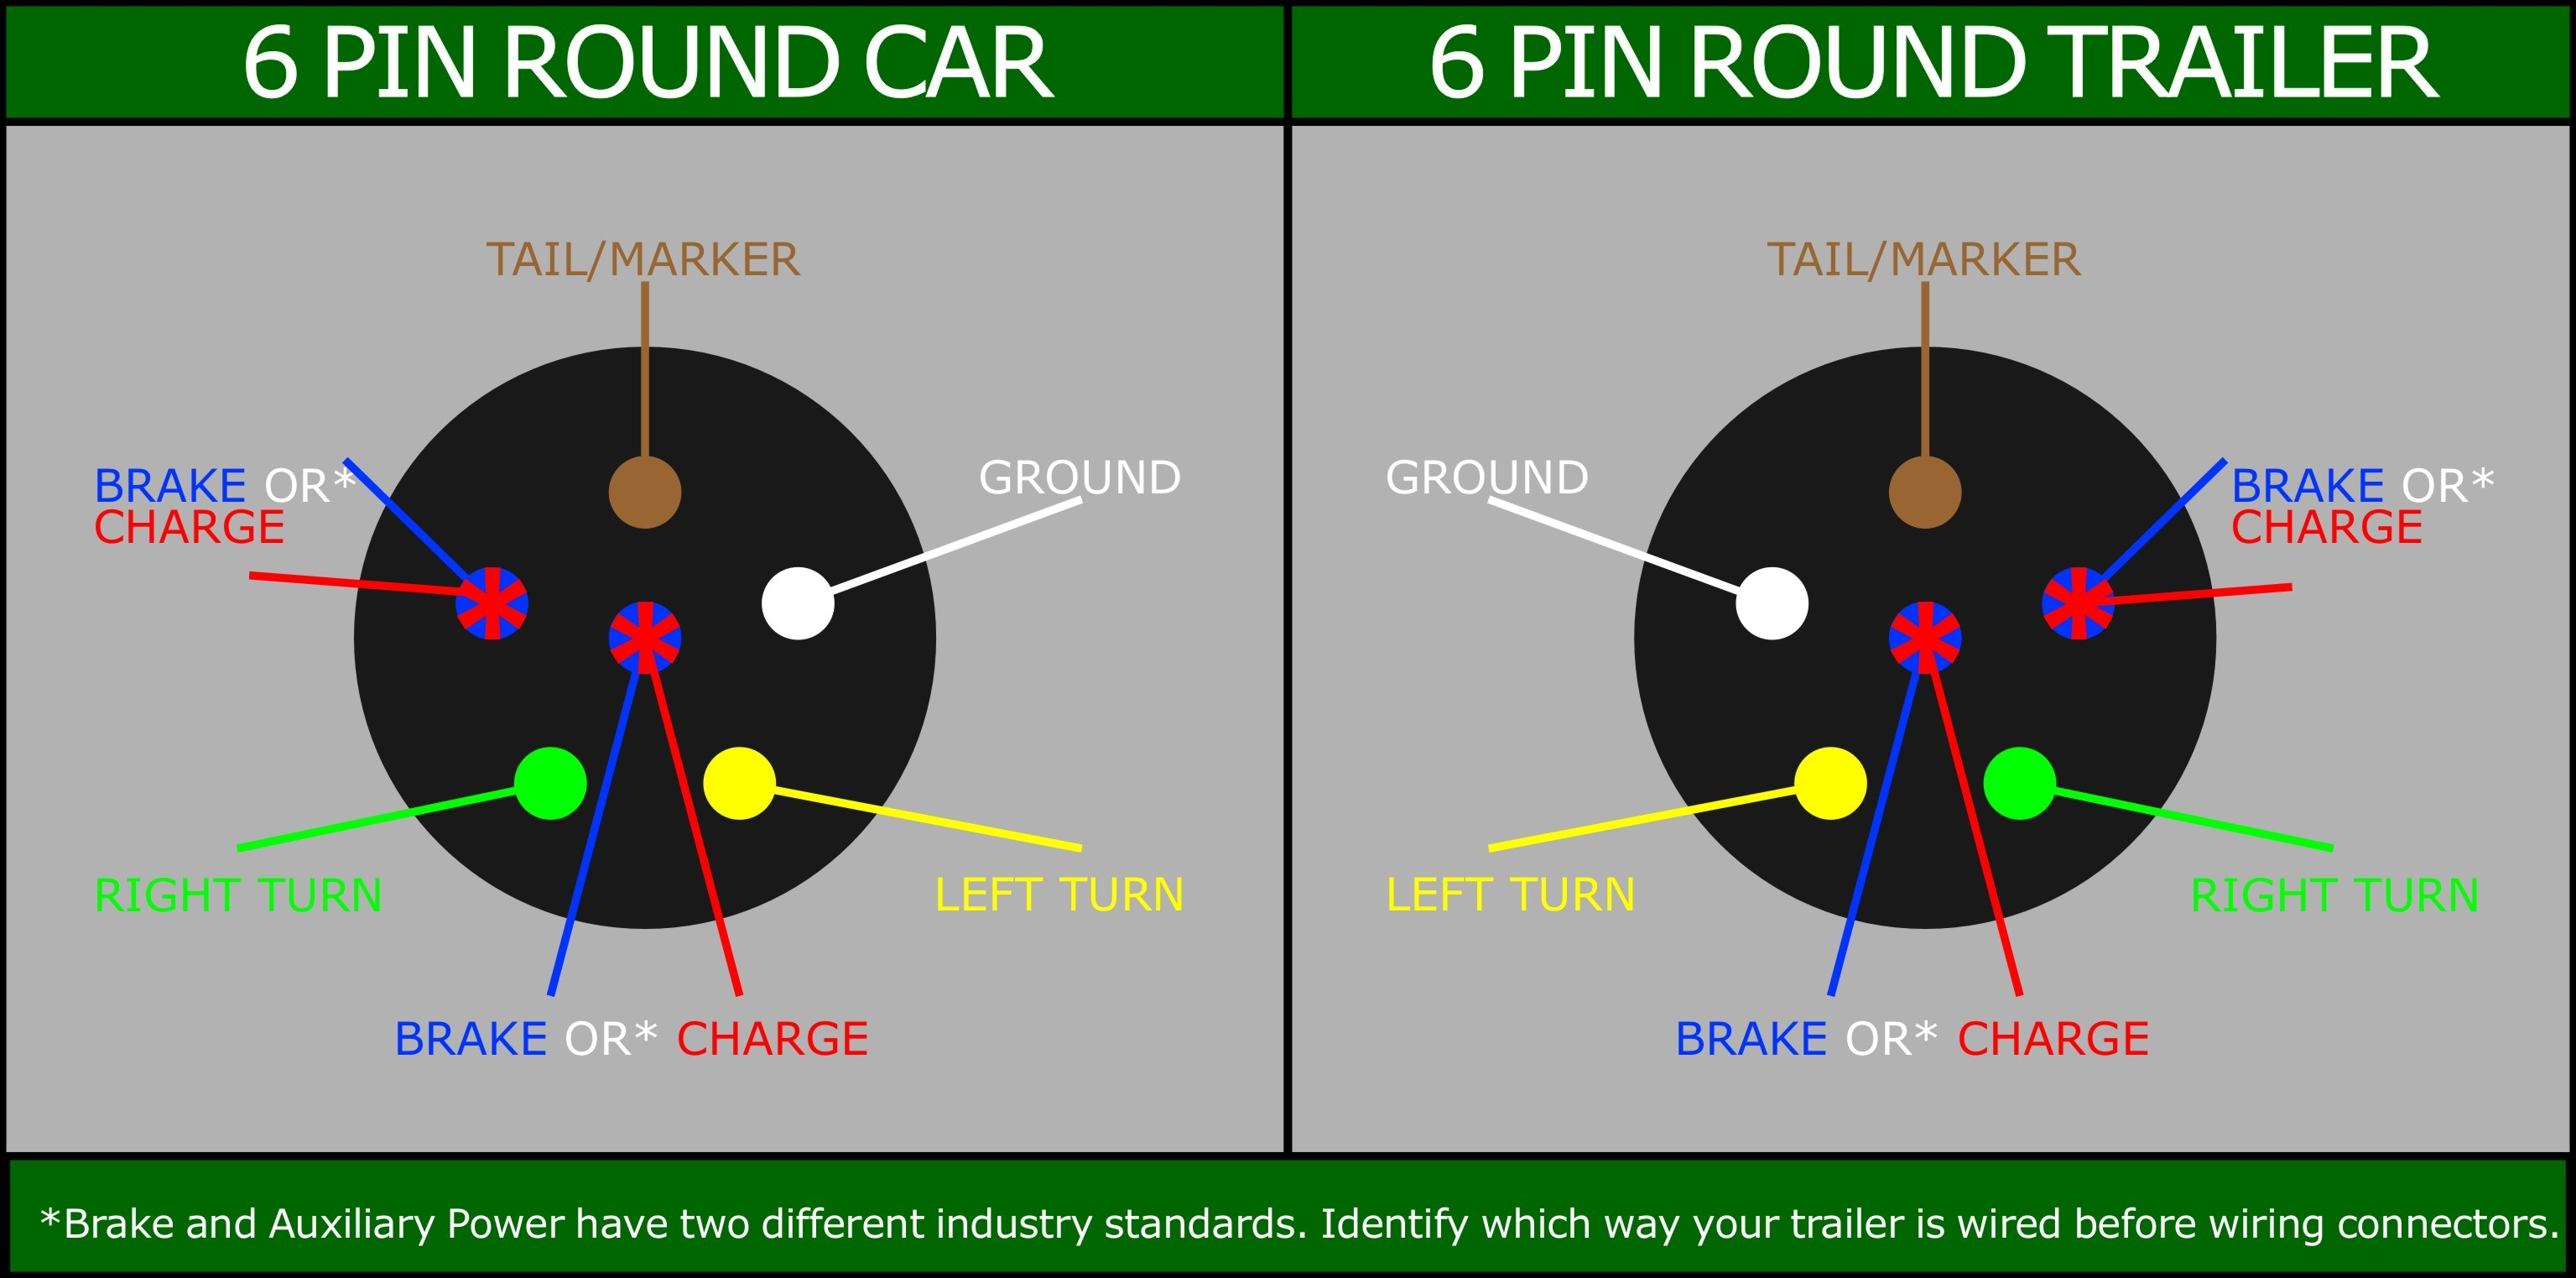 6 Pin Trailer Plug Diagram - Wiring Diagrams Click - Trailer Wiring Connection Diagram